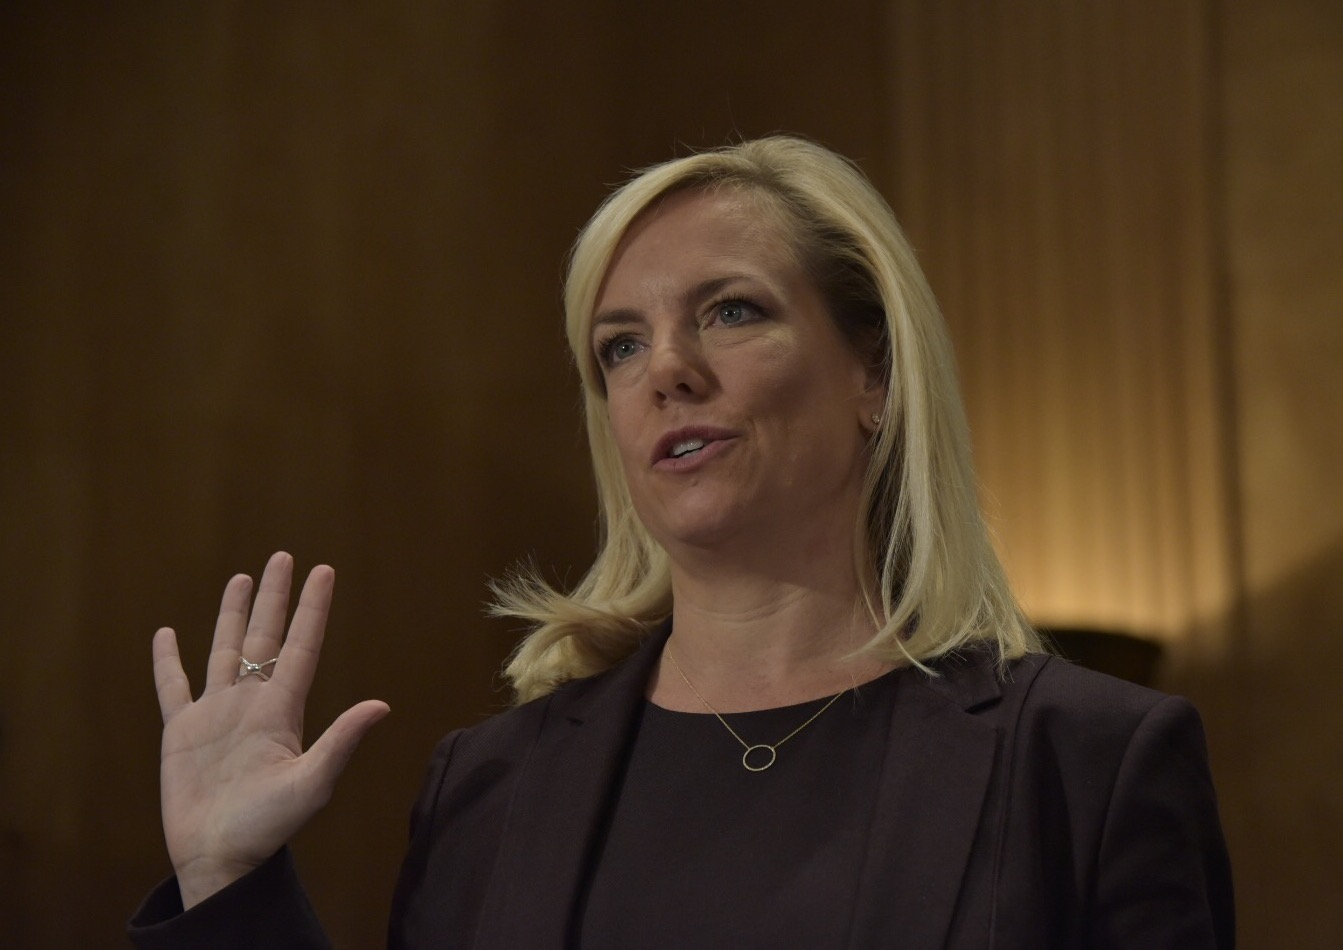 Kirstjen Nielsen Opens Her Mouth And Screws Up Donald